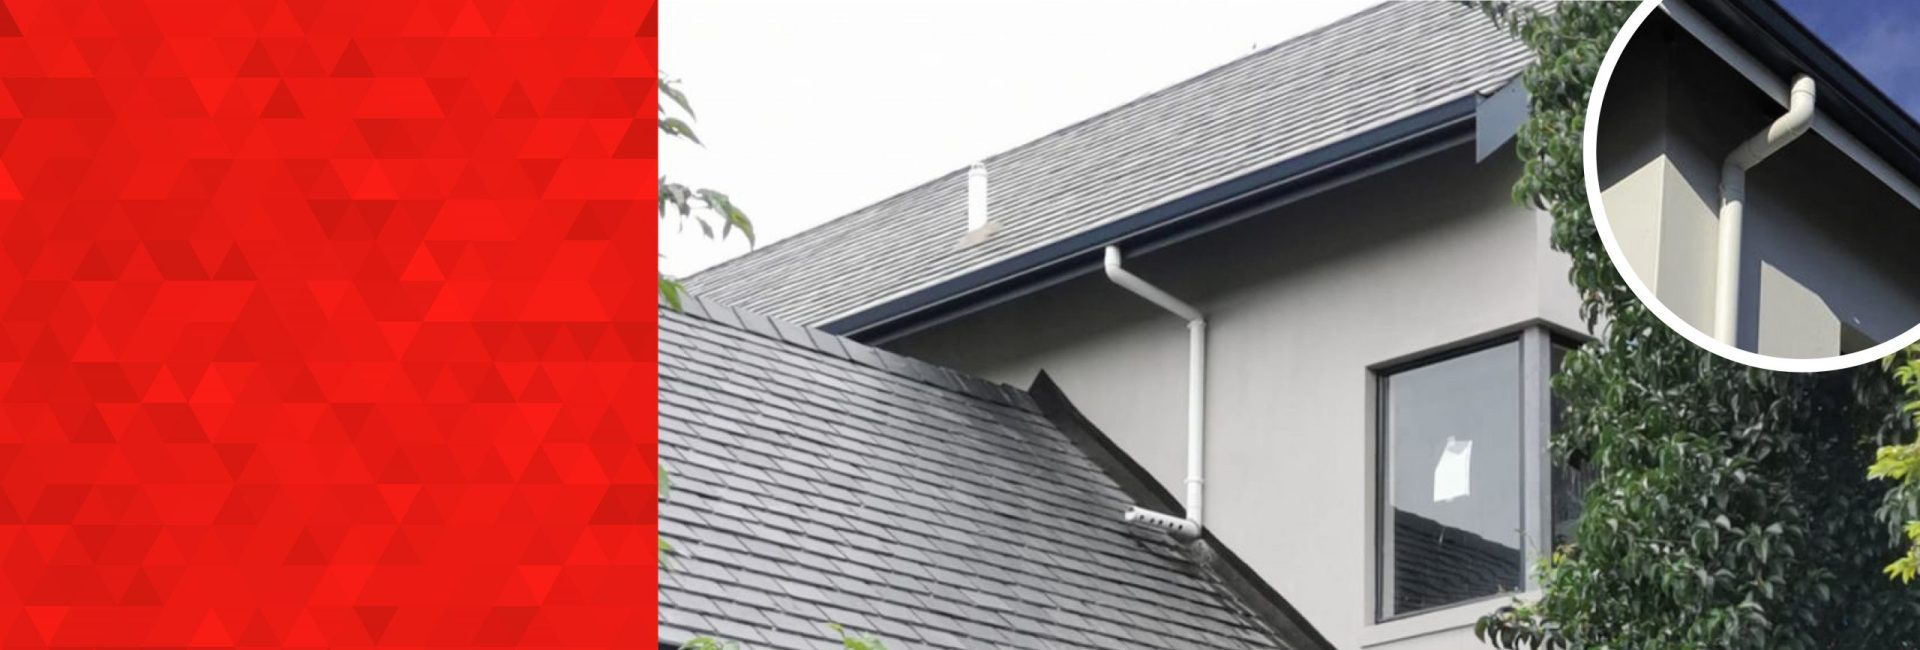 Dezzo Roofing Banner 1